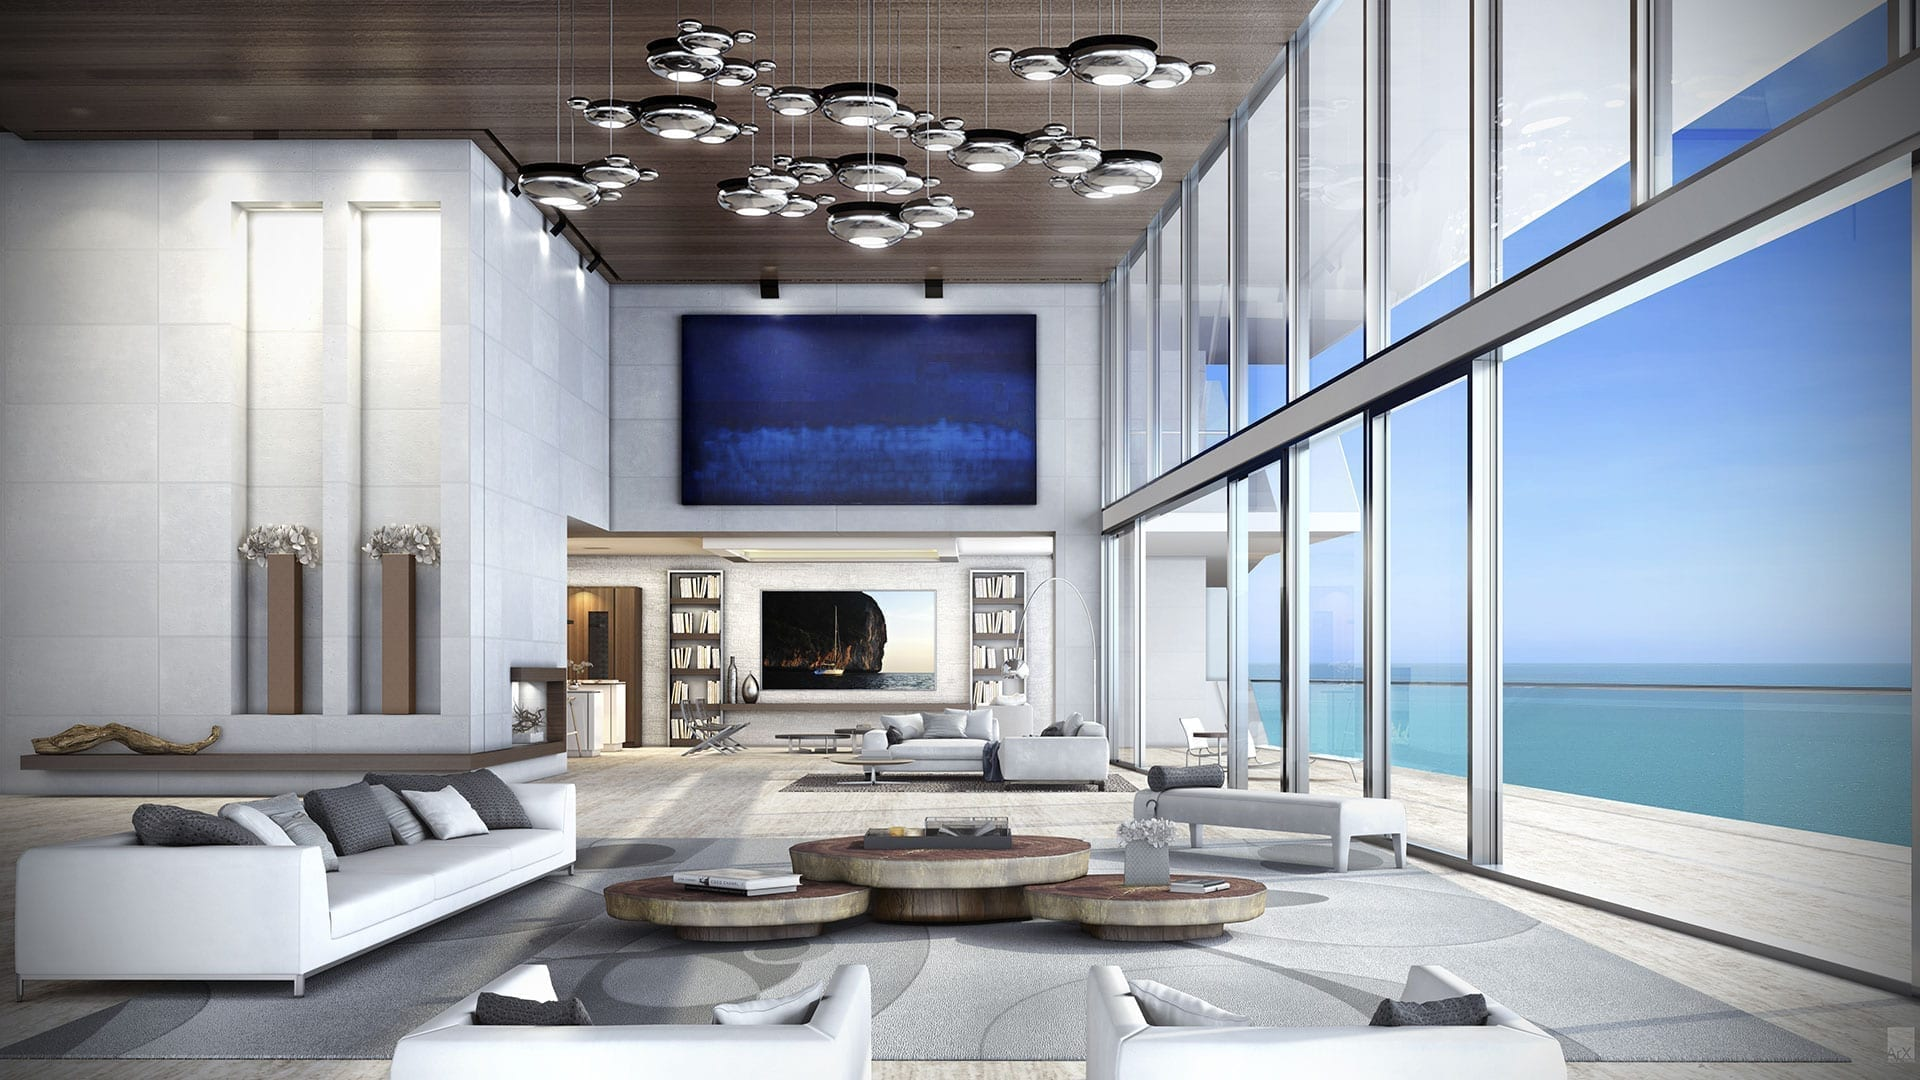 Turnberry Ocean Club - Miami Luxury Condo Design - Swedroe Architecture